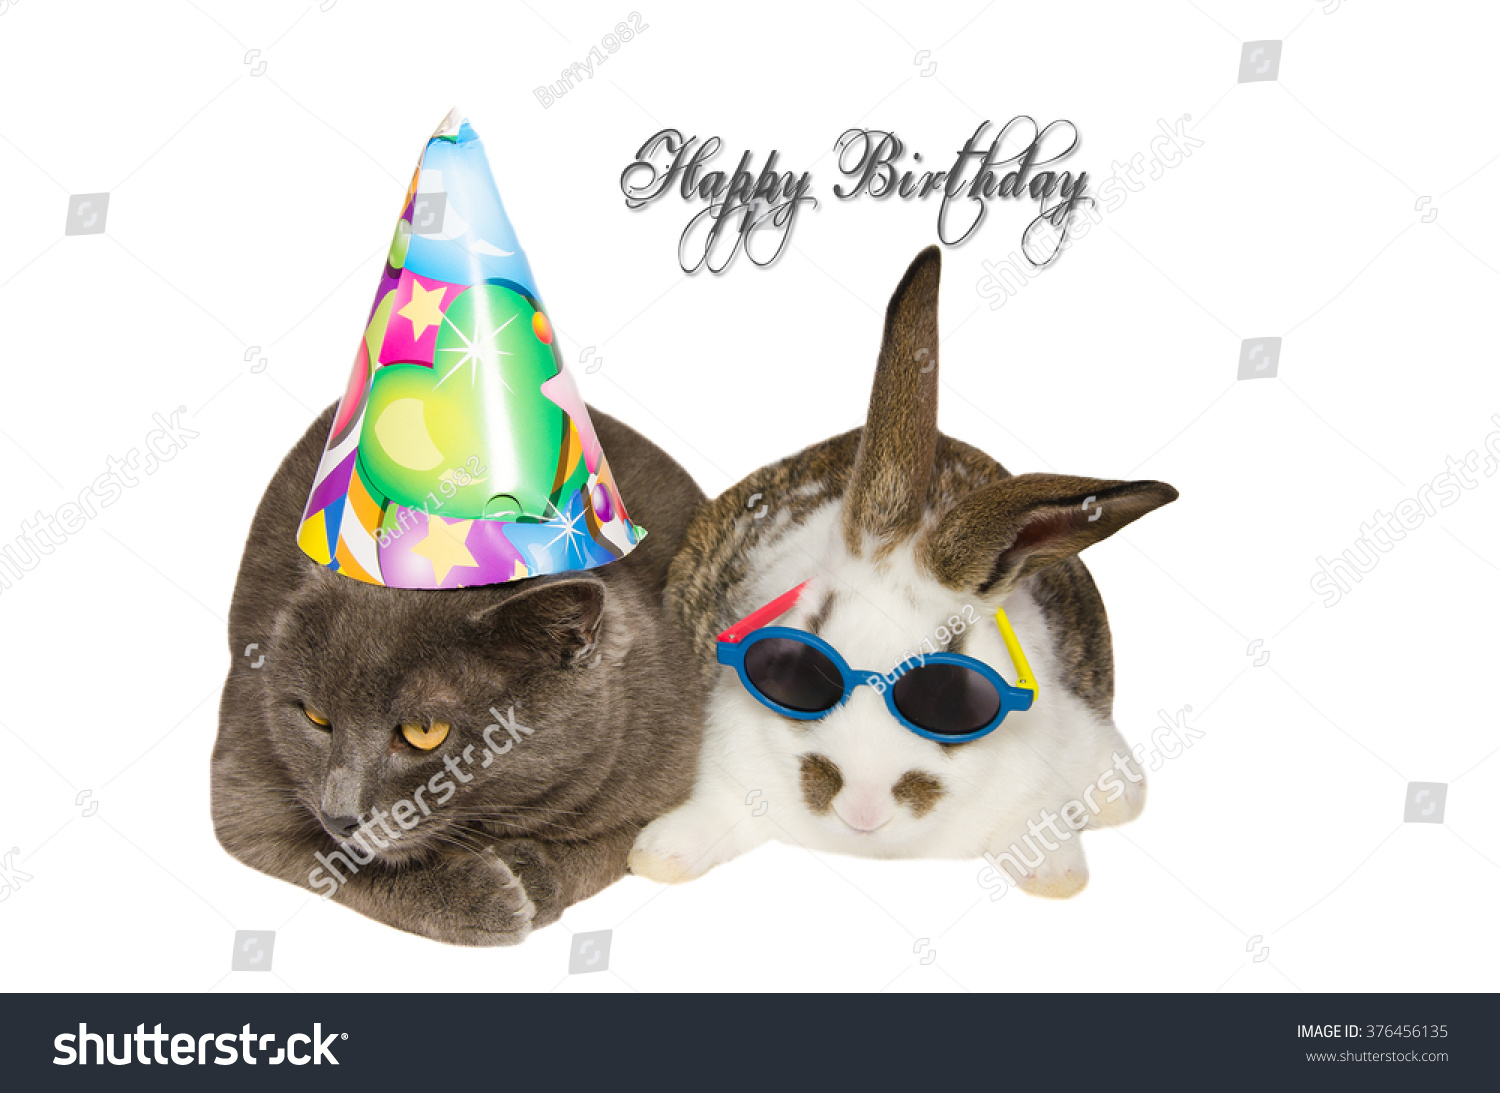 Party Pets With Funny Cat And Bunny Happy Birthday Card Animals Isolated On White